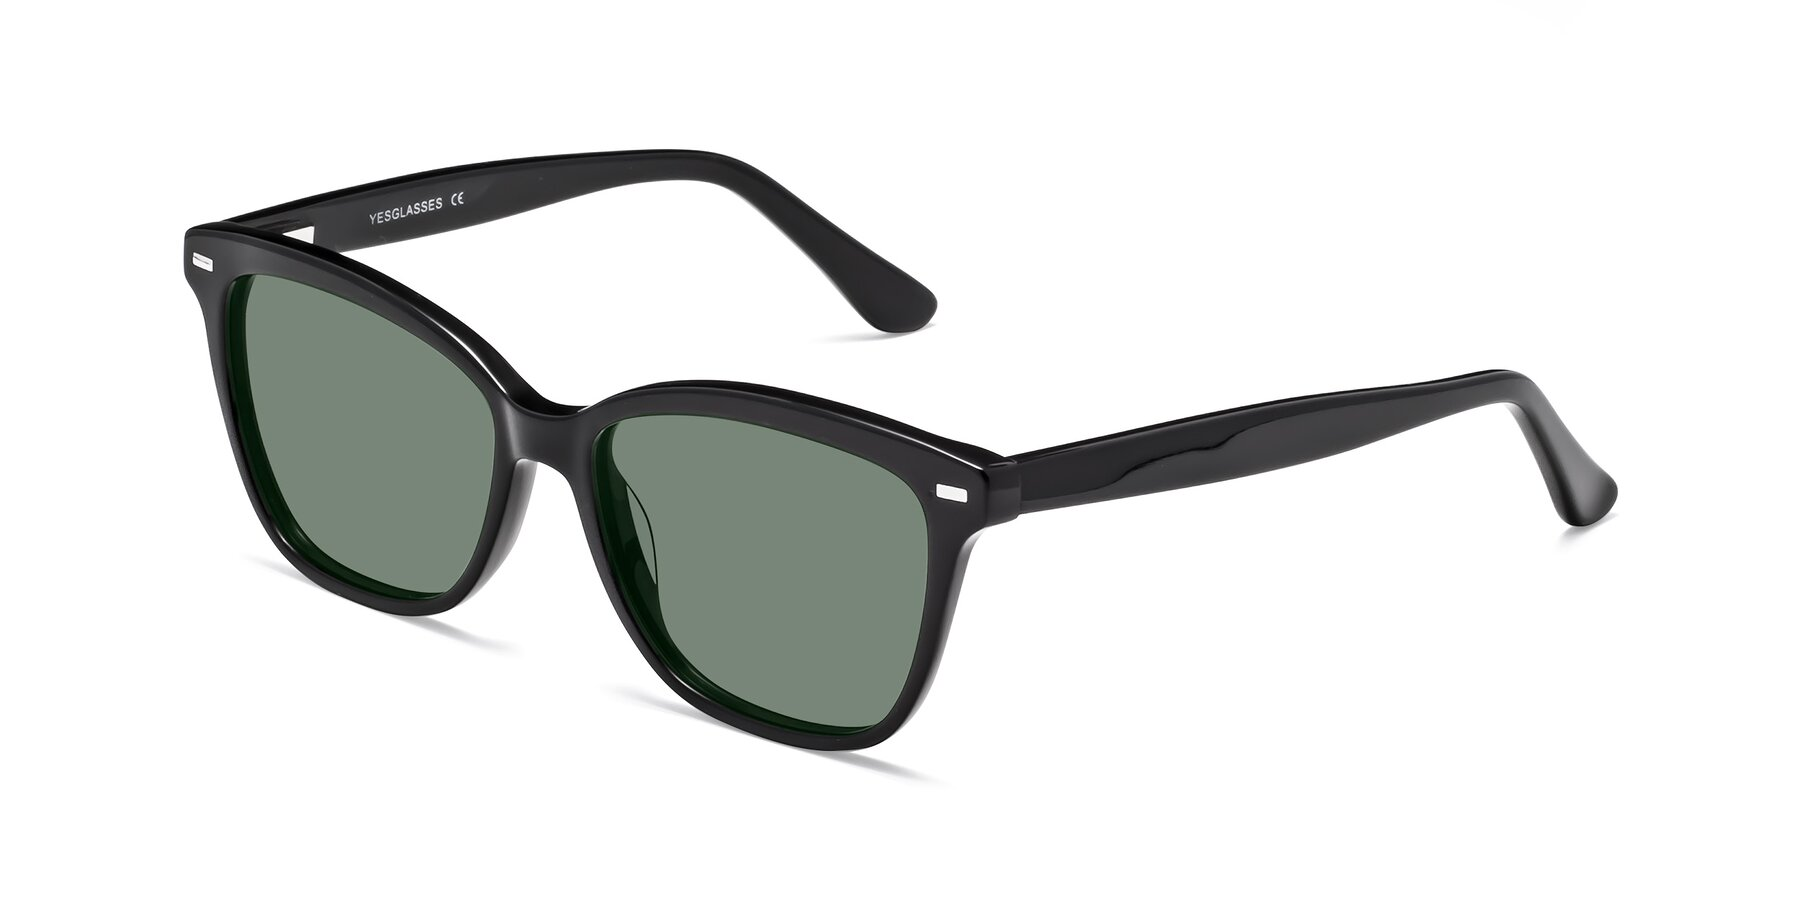 Angle of 17485 in Black with Medium Green Tinted Lenses